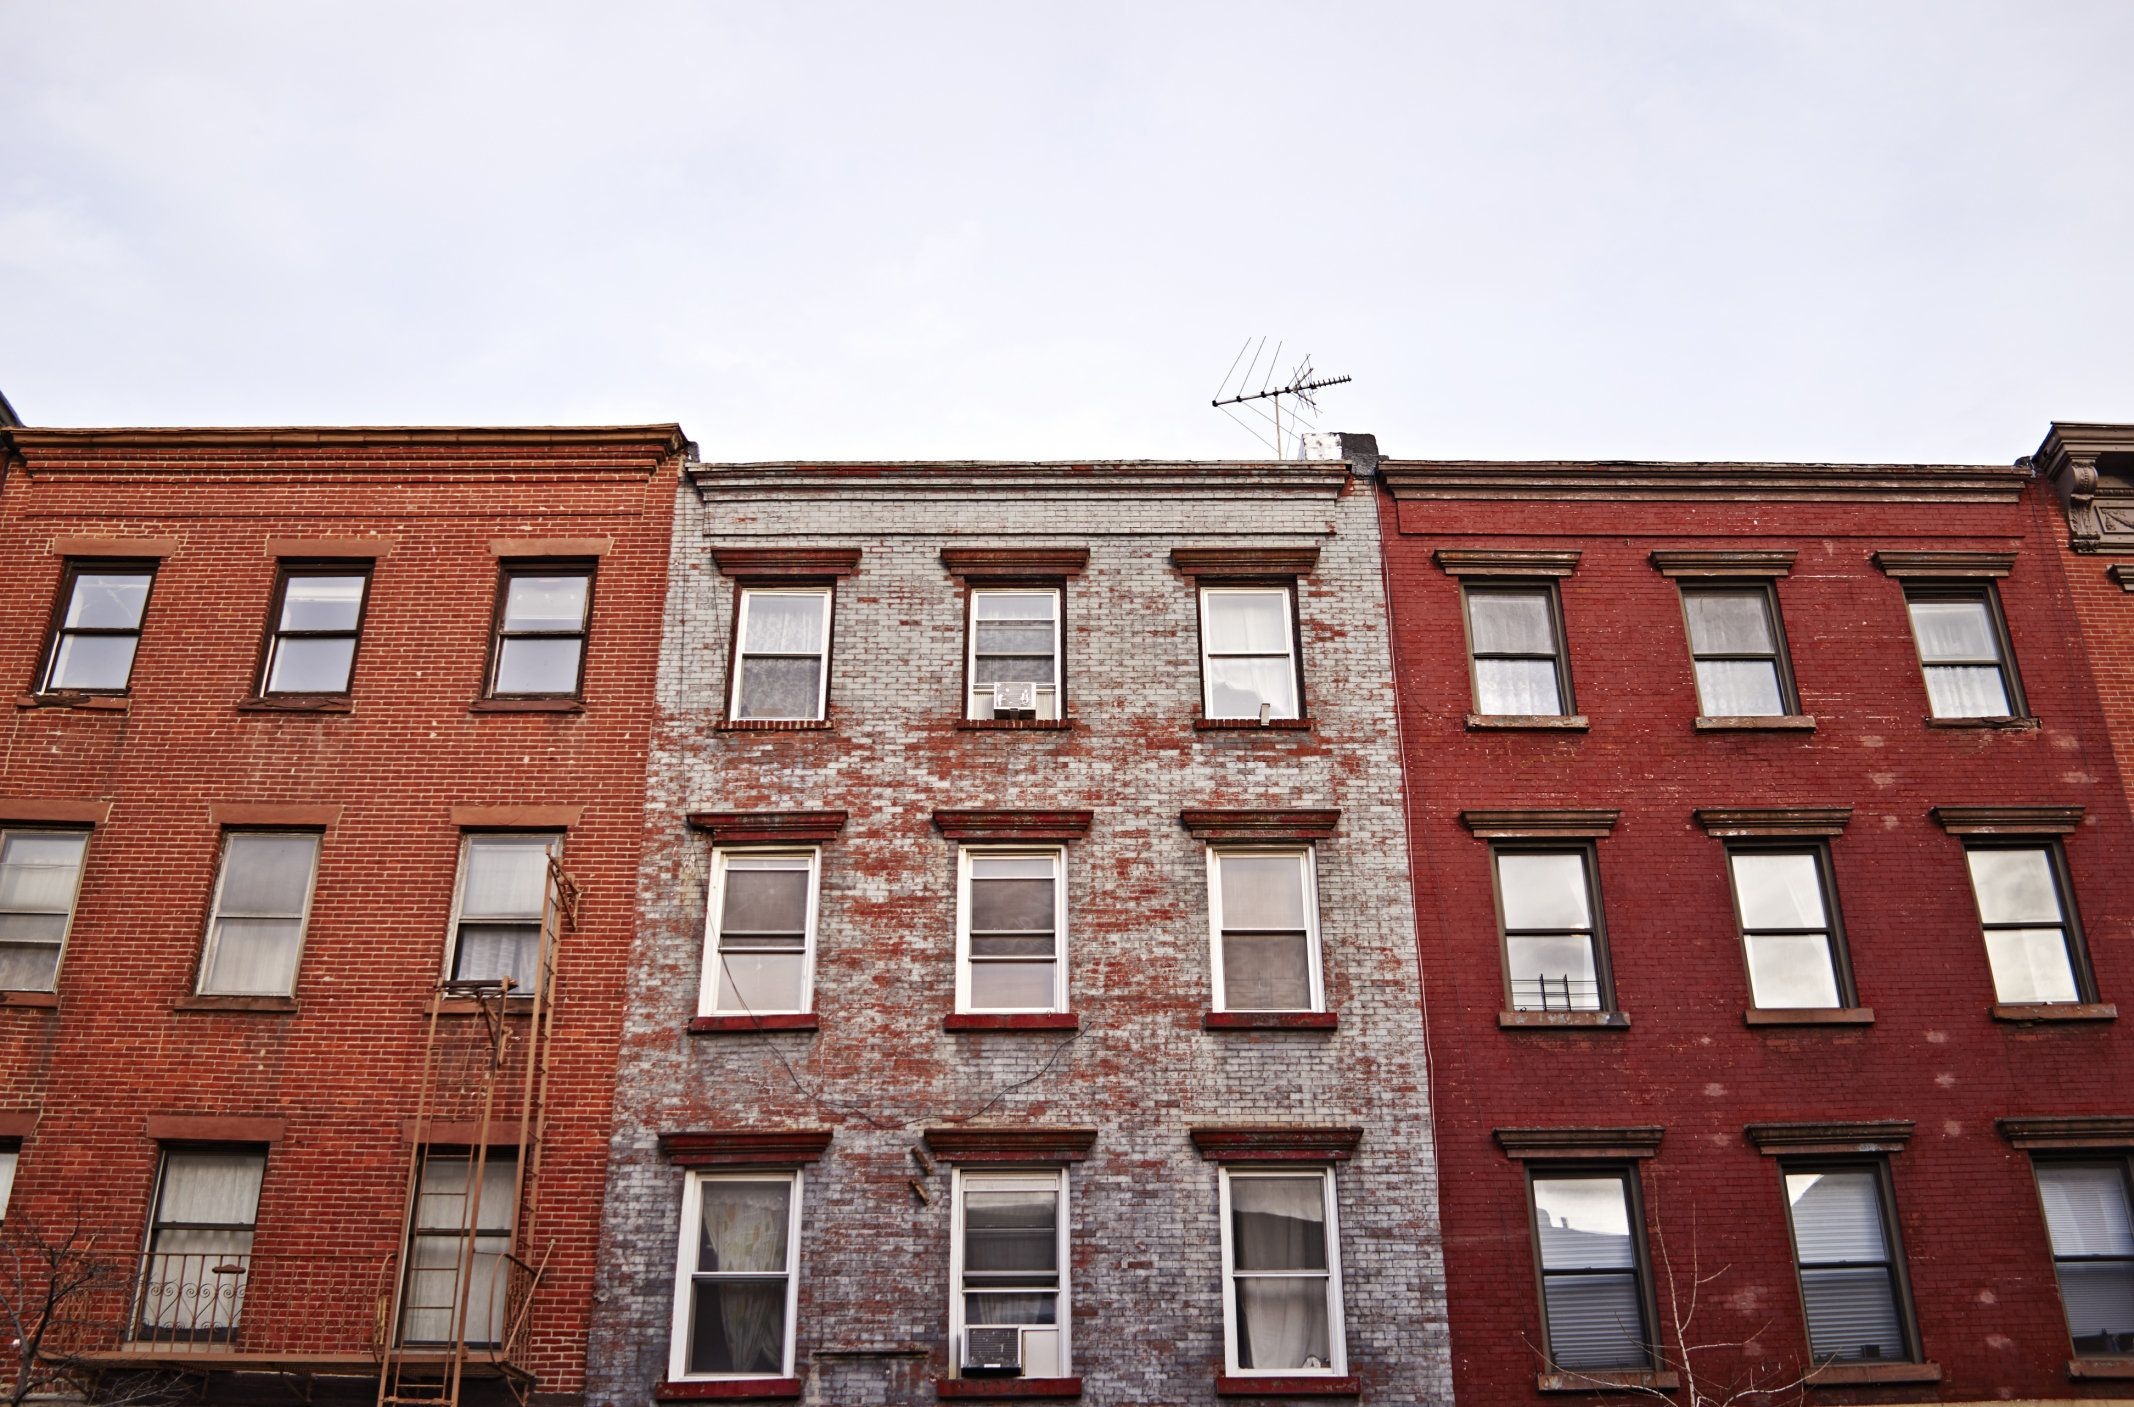 New York City's rents werethe highest in the country in July, according to an Apartment List report.